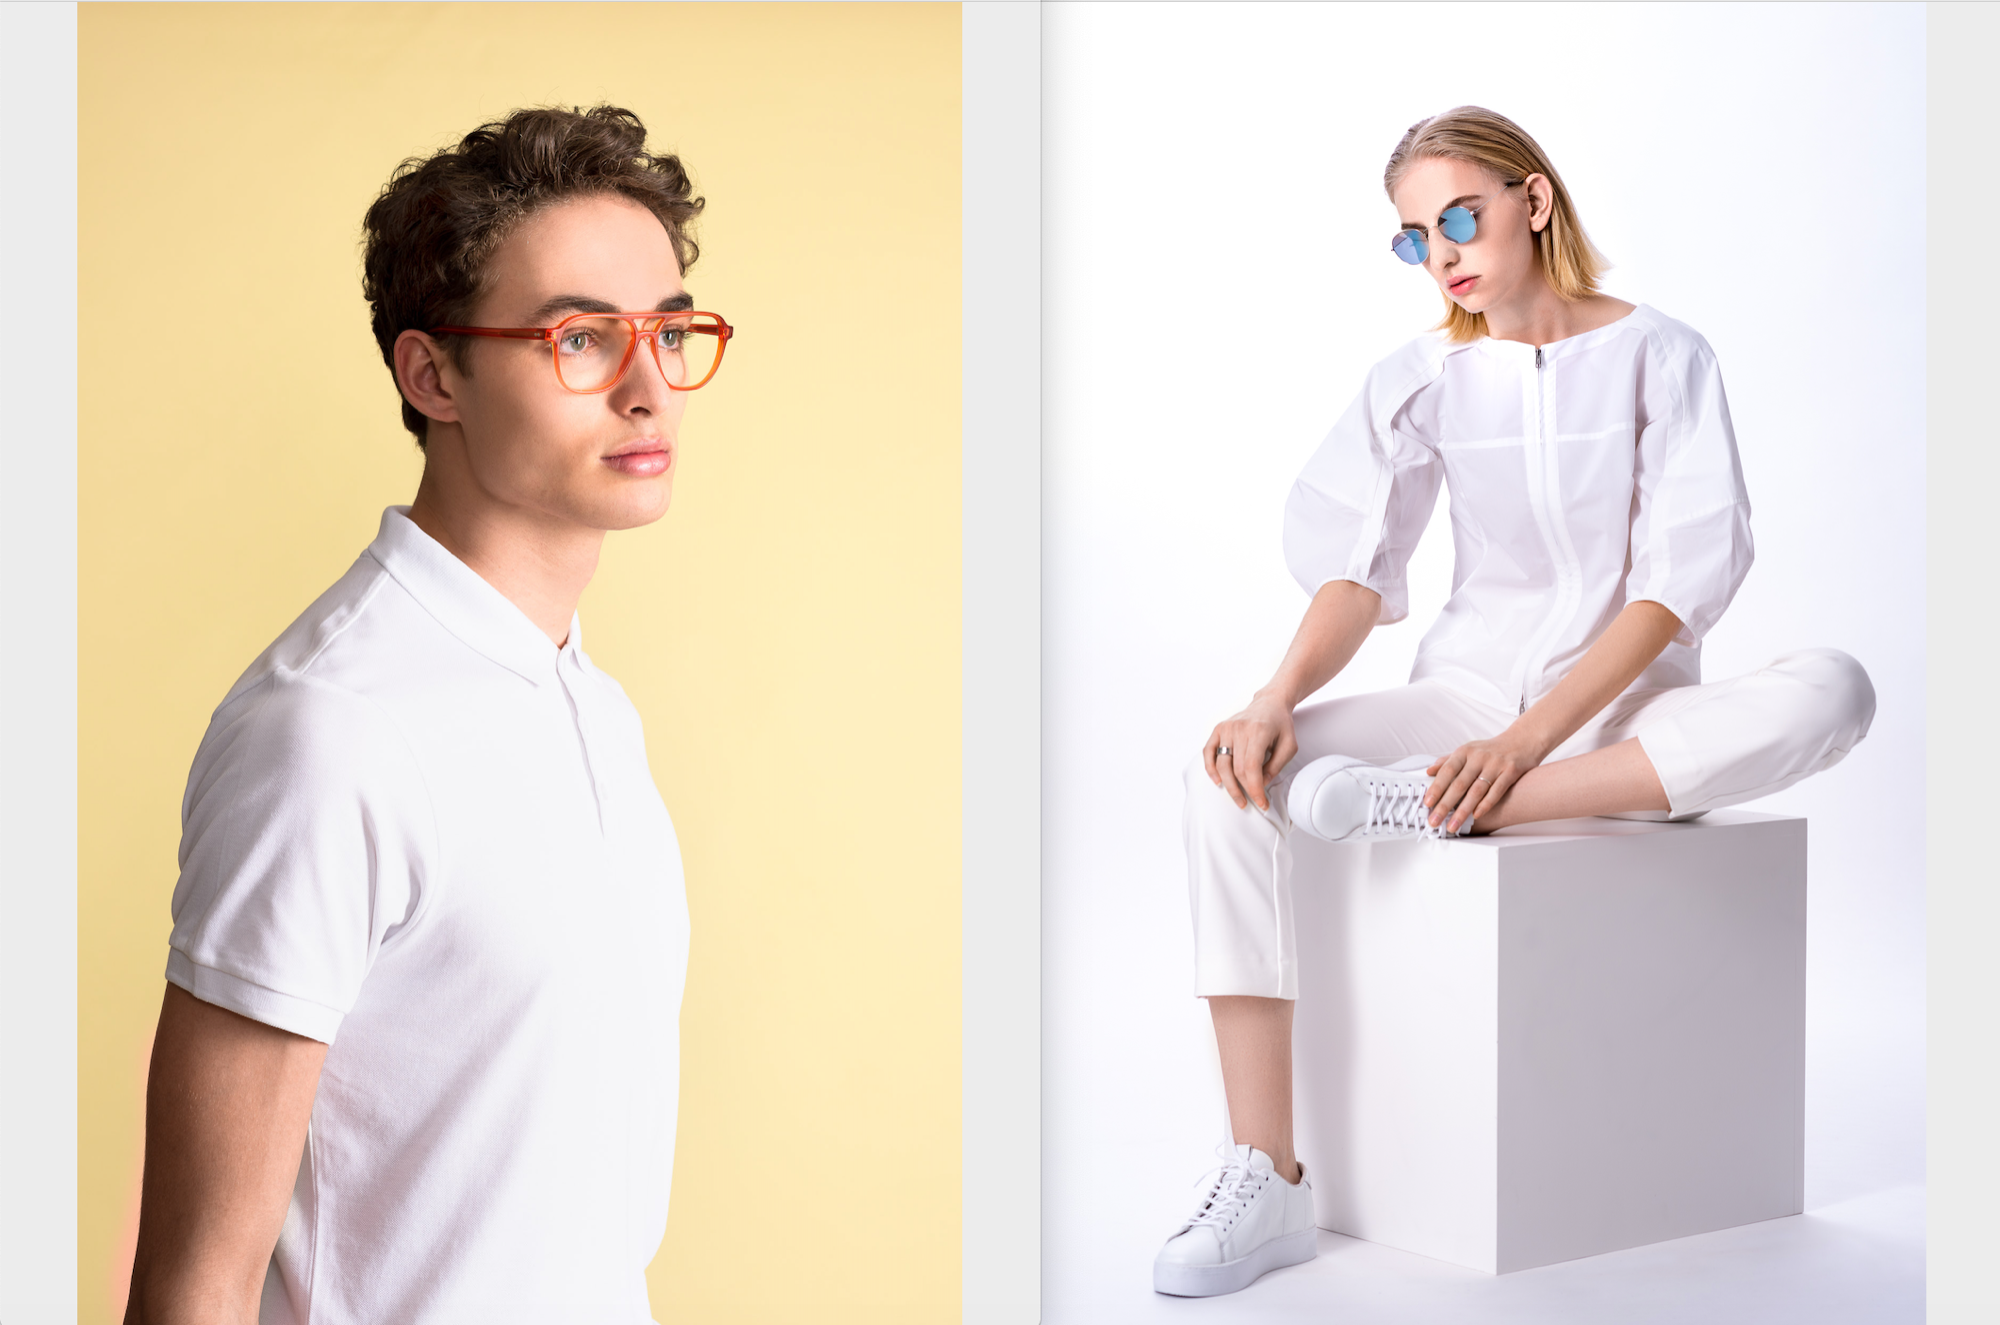 New work of Mimmi for Bonocler Eyewear